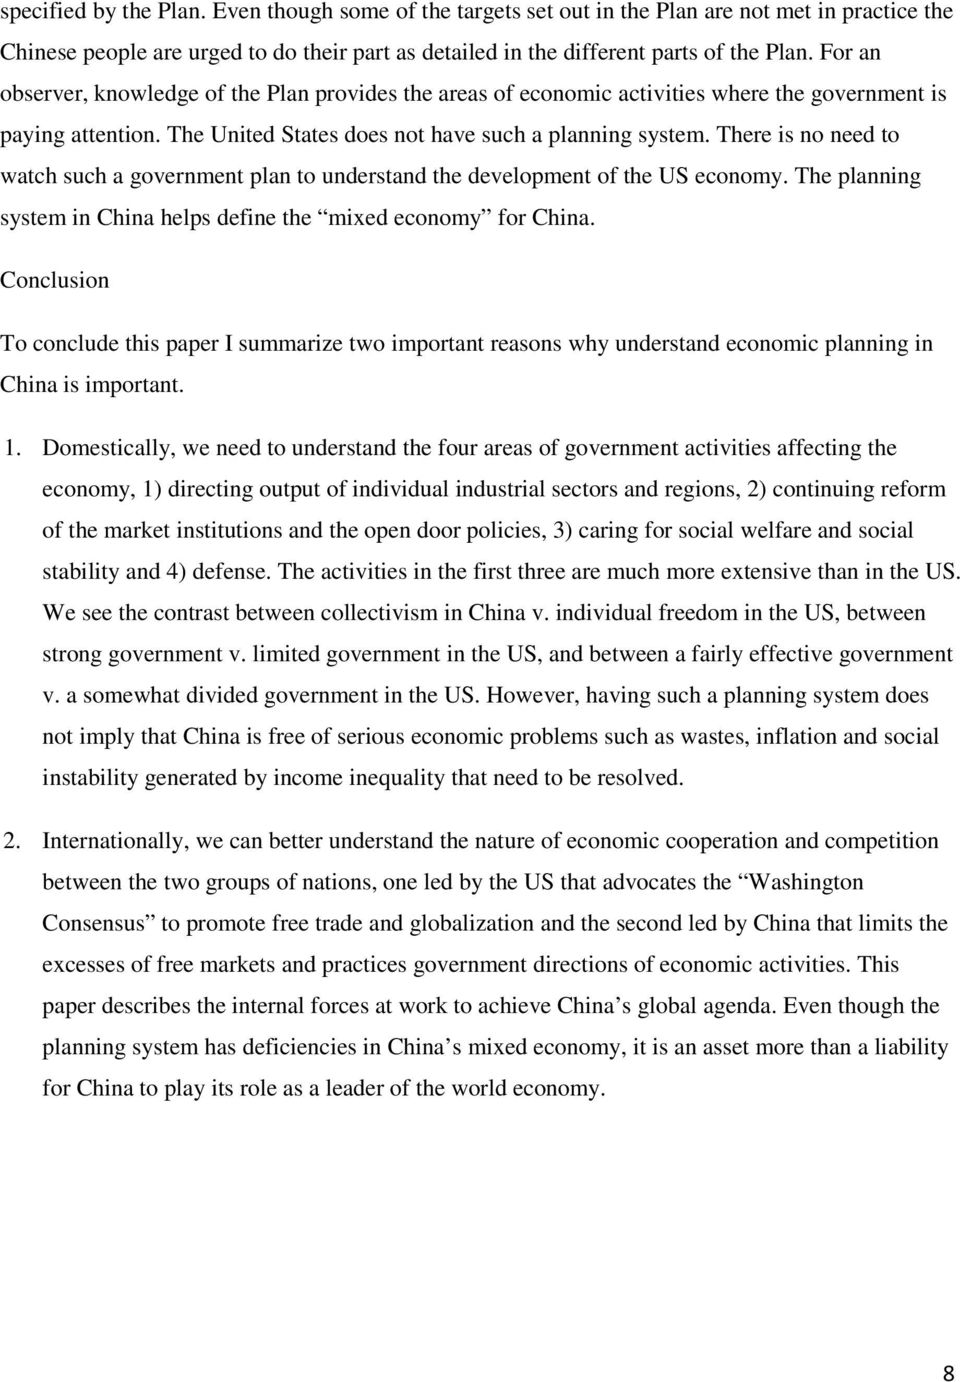 There is no need to watch such a government plan to understand the development of the US economy. The planning system in China helps define the mixed economy for China.